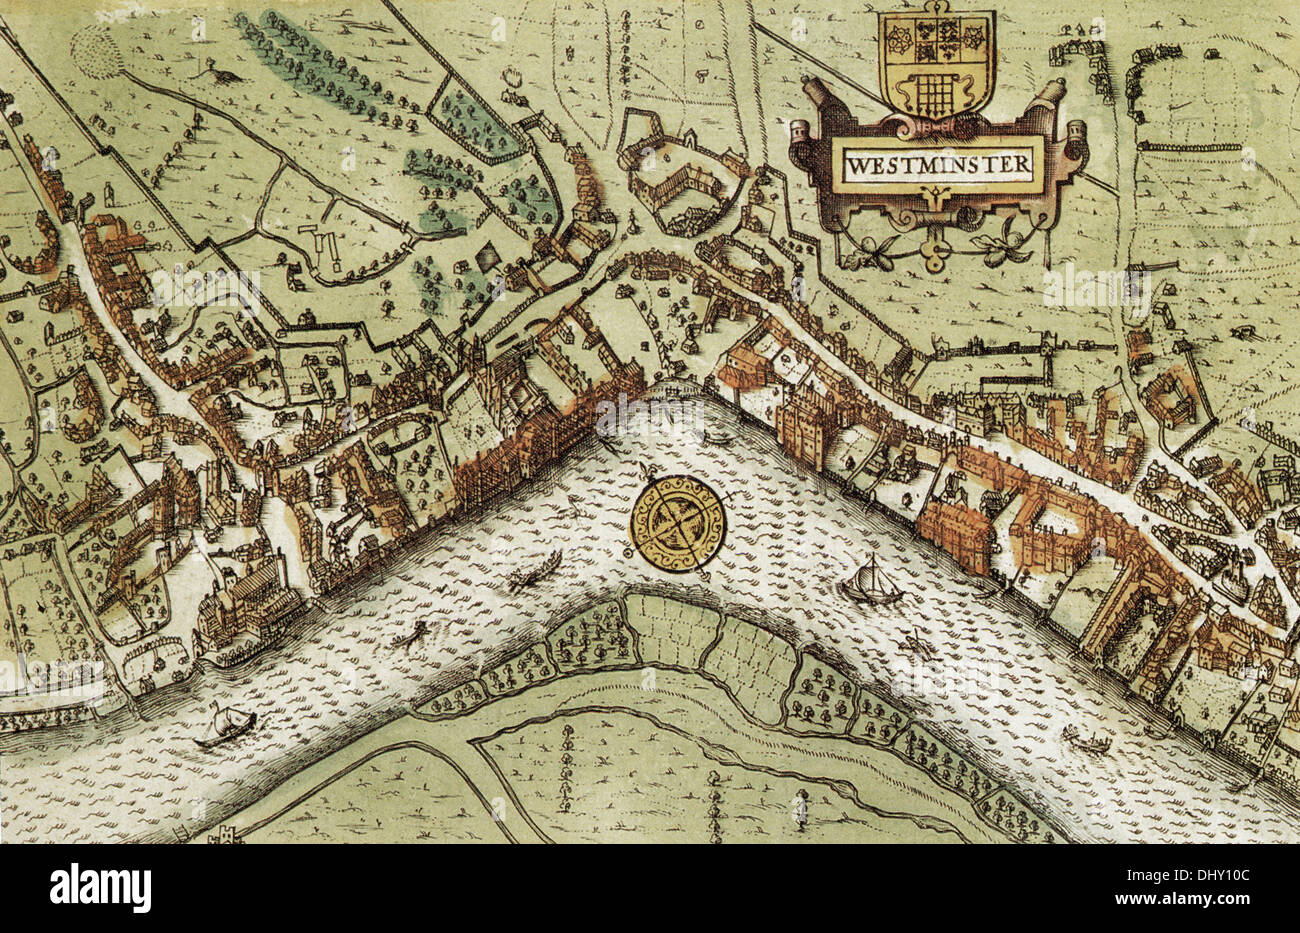 Old Map Of Westminster England By John Speed Stock Photo - Westminster map